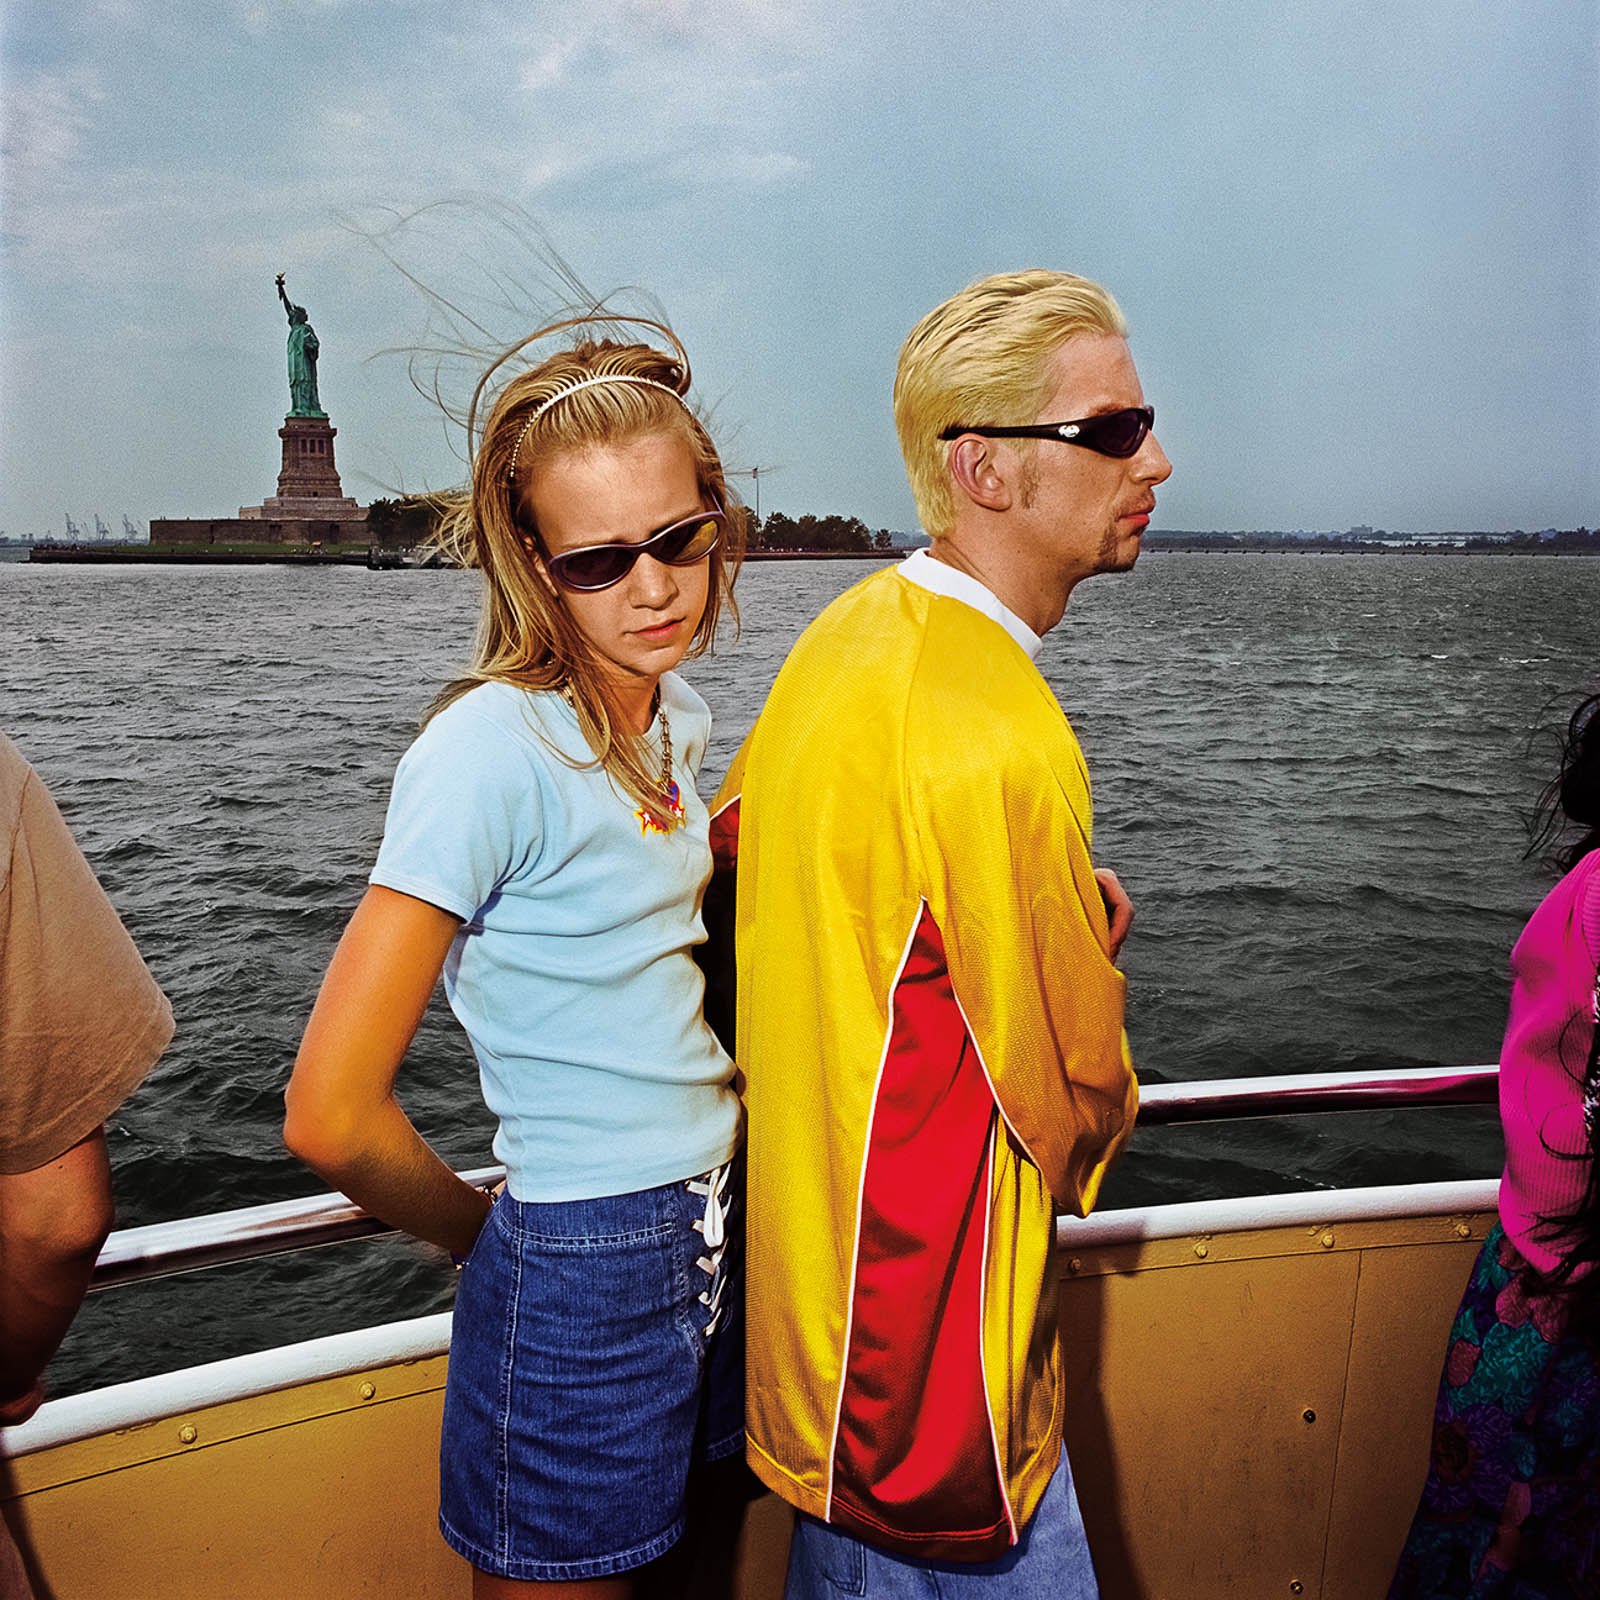 Couple on Ferry to Statue of Liberty Island, New York 2000